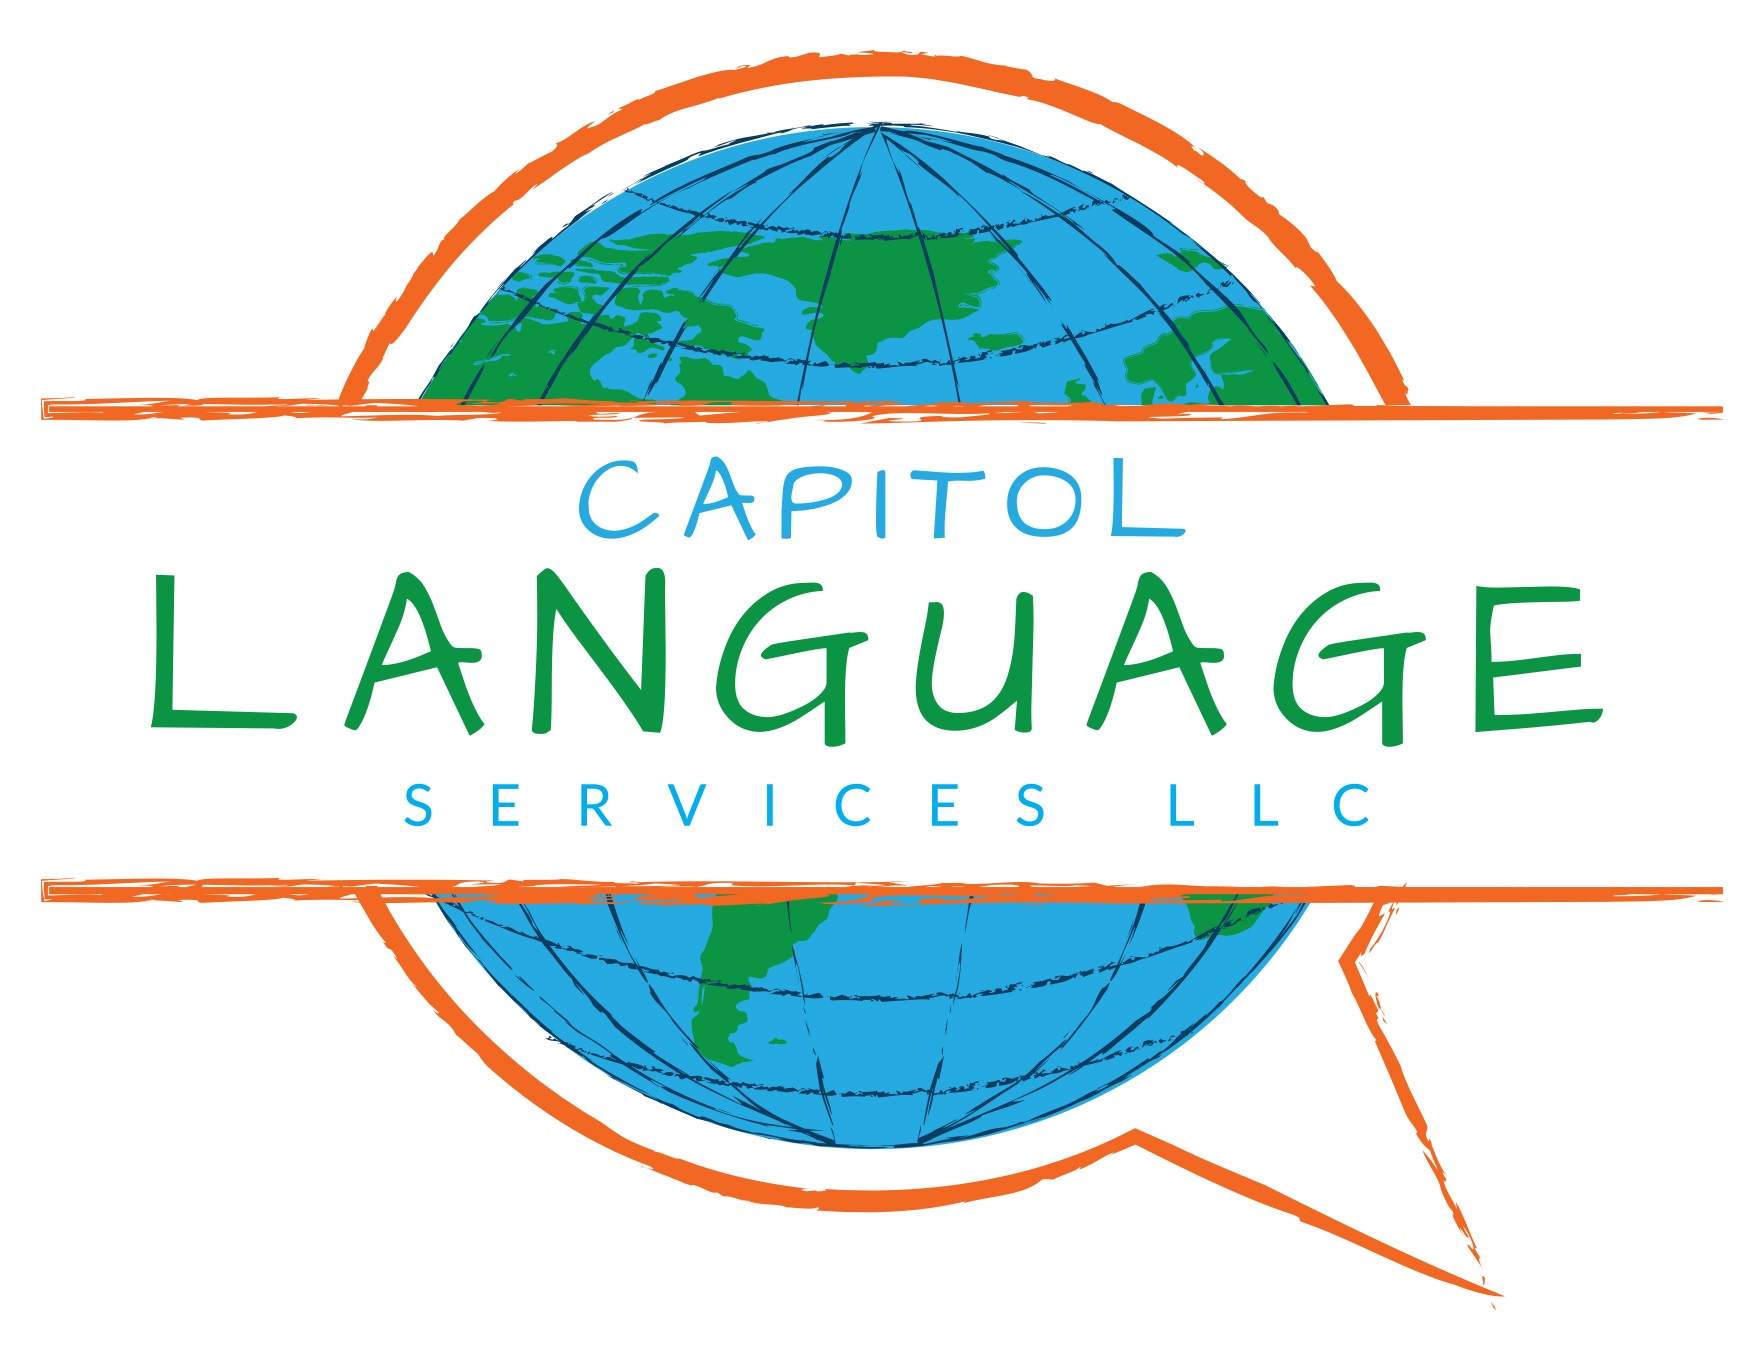 CONTACT US                                     Capitol Language Services, LLC                                     4545 42nd Street N.W. Suite 312 Washington, D.C. 20016 Office: (202) 597-5453